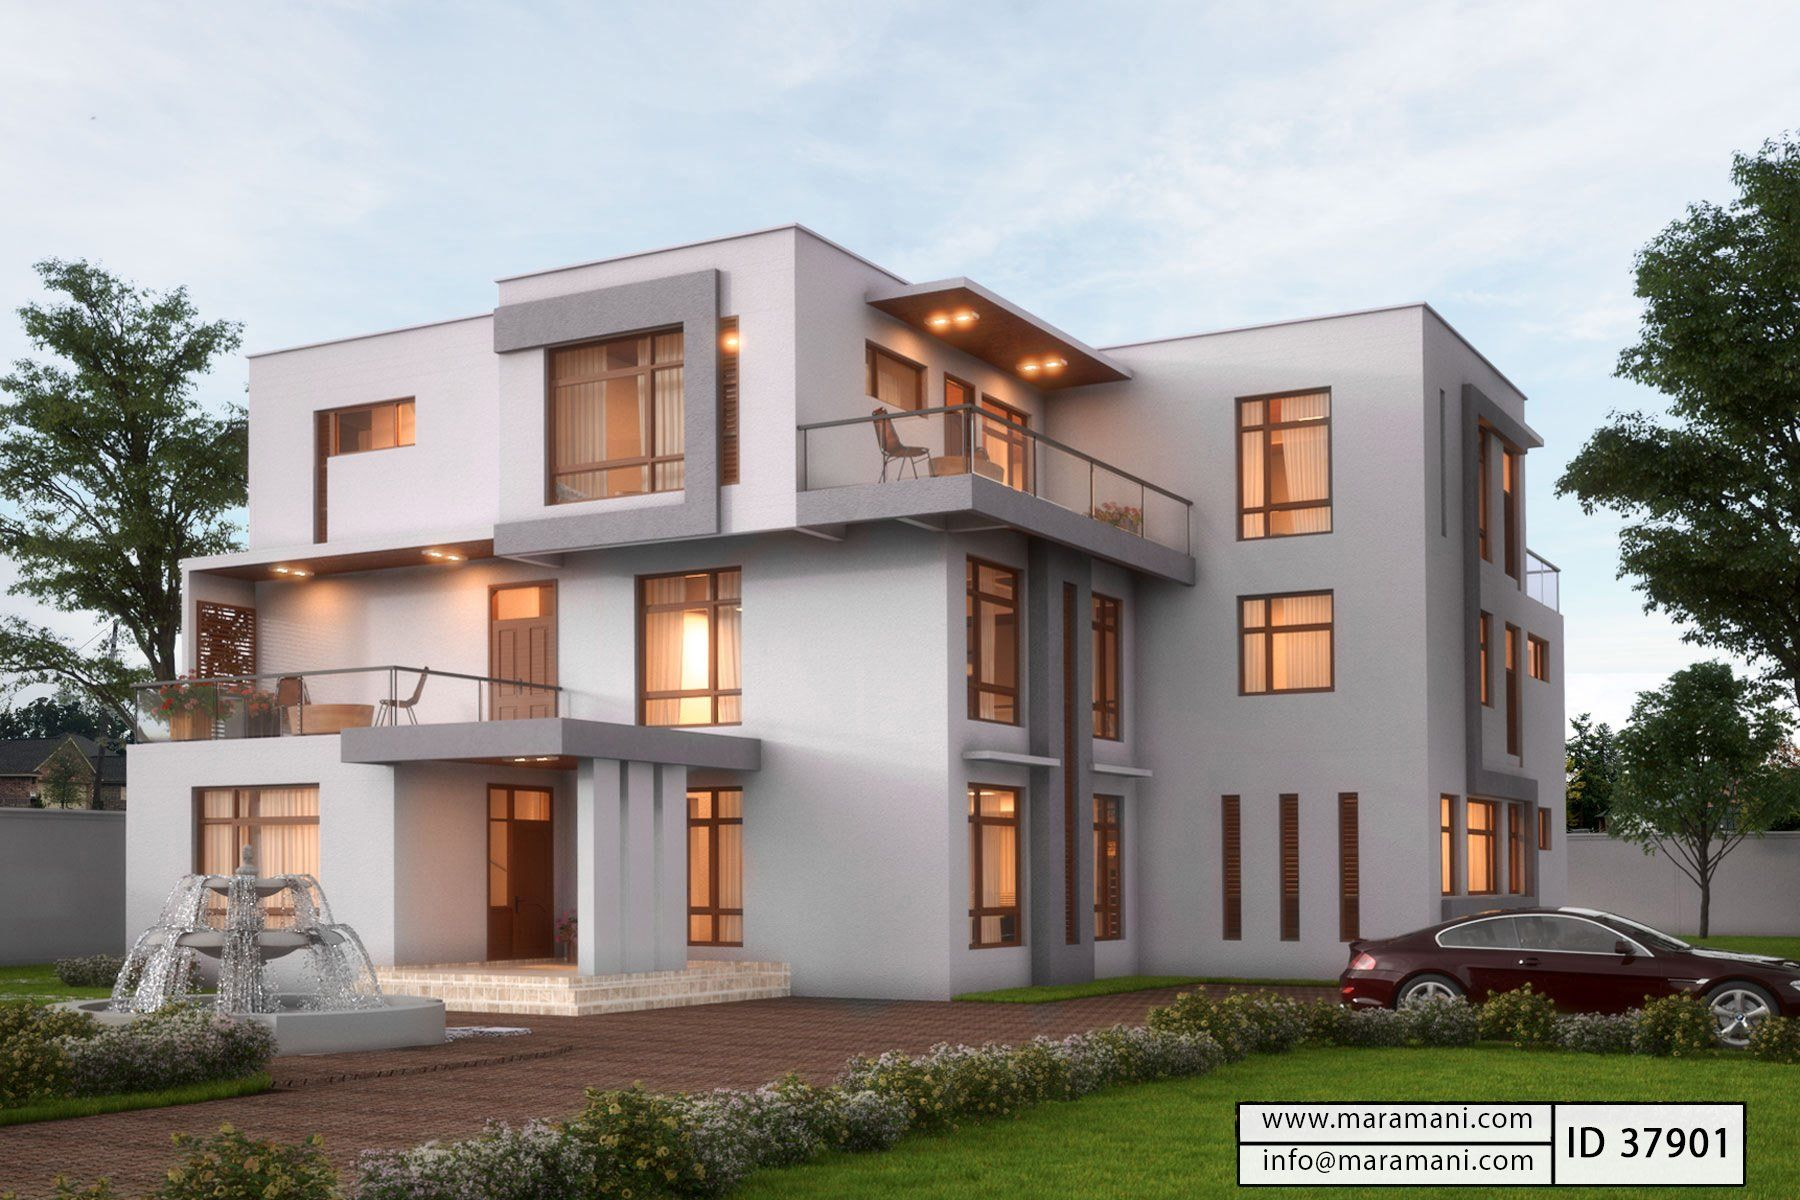 Mansion house design id 37901 house designs by maramani for Mansion house design